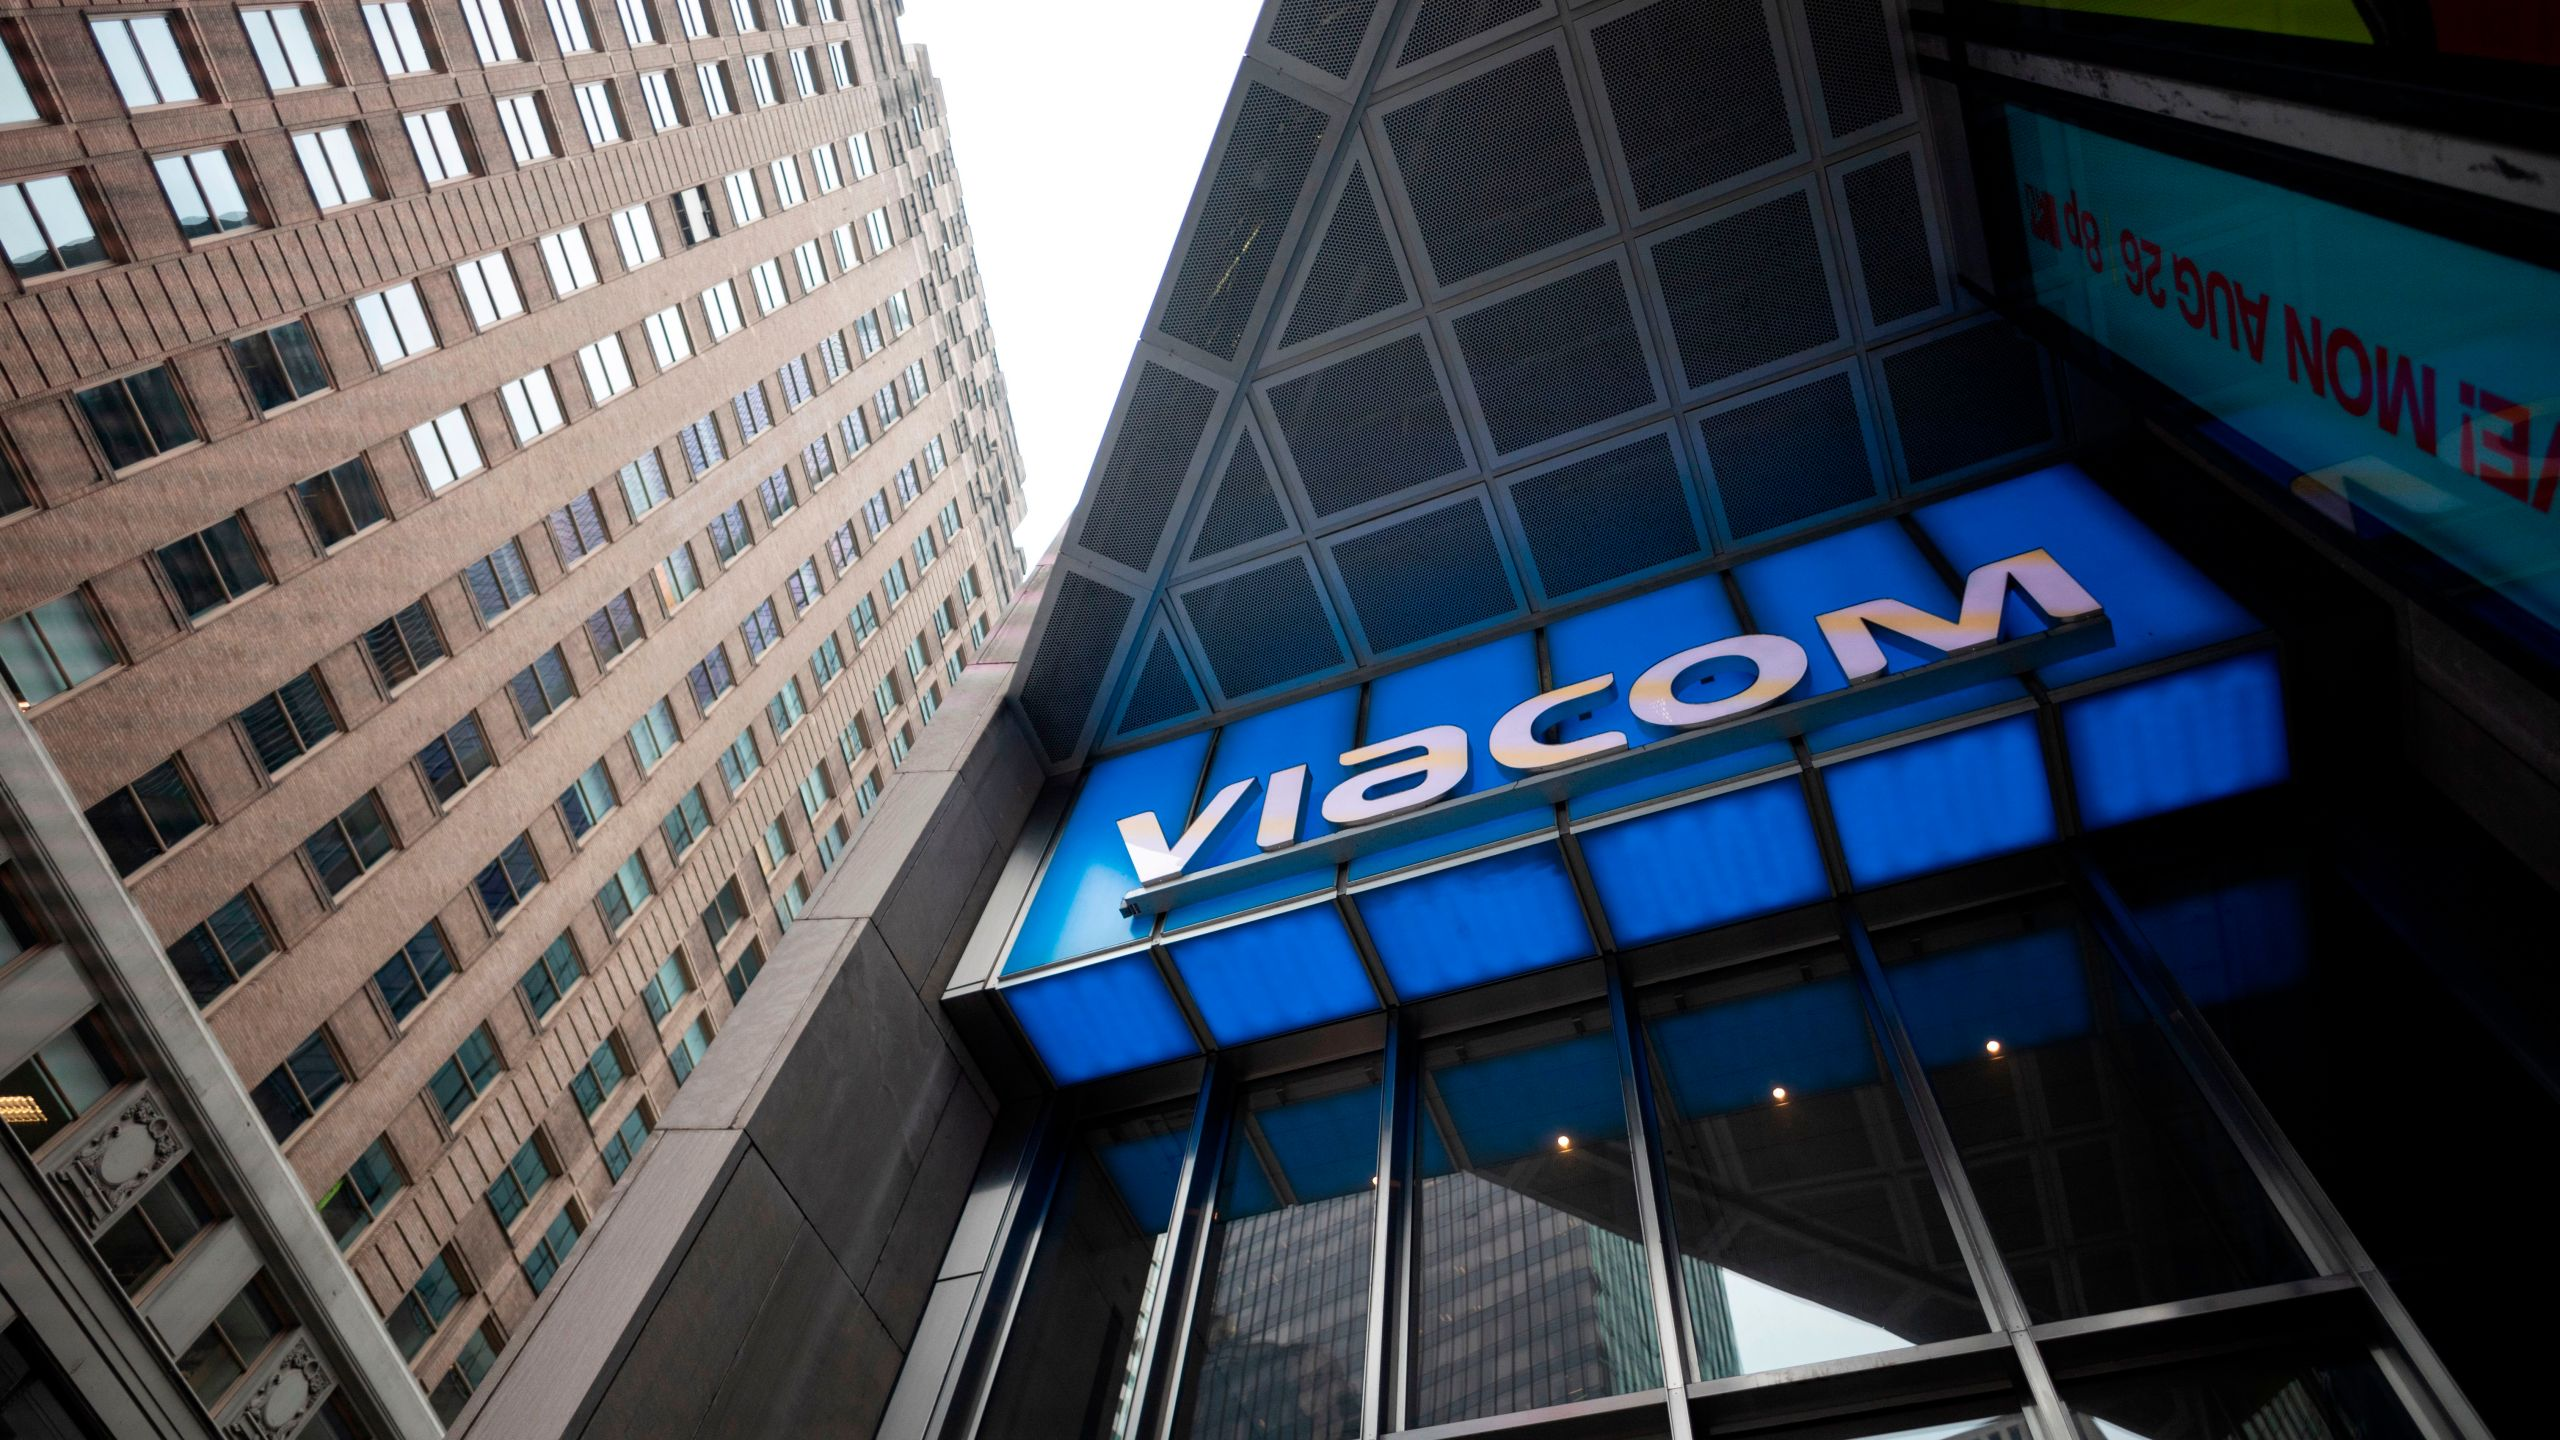 The Viacom logo is seen outside company headquarters in New York City on August 13, 2019. (JOHANNES EISELE/AFP via Getty Images)